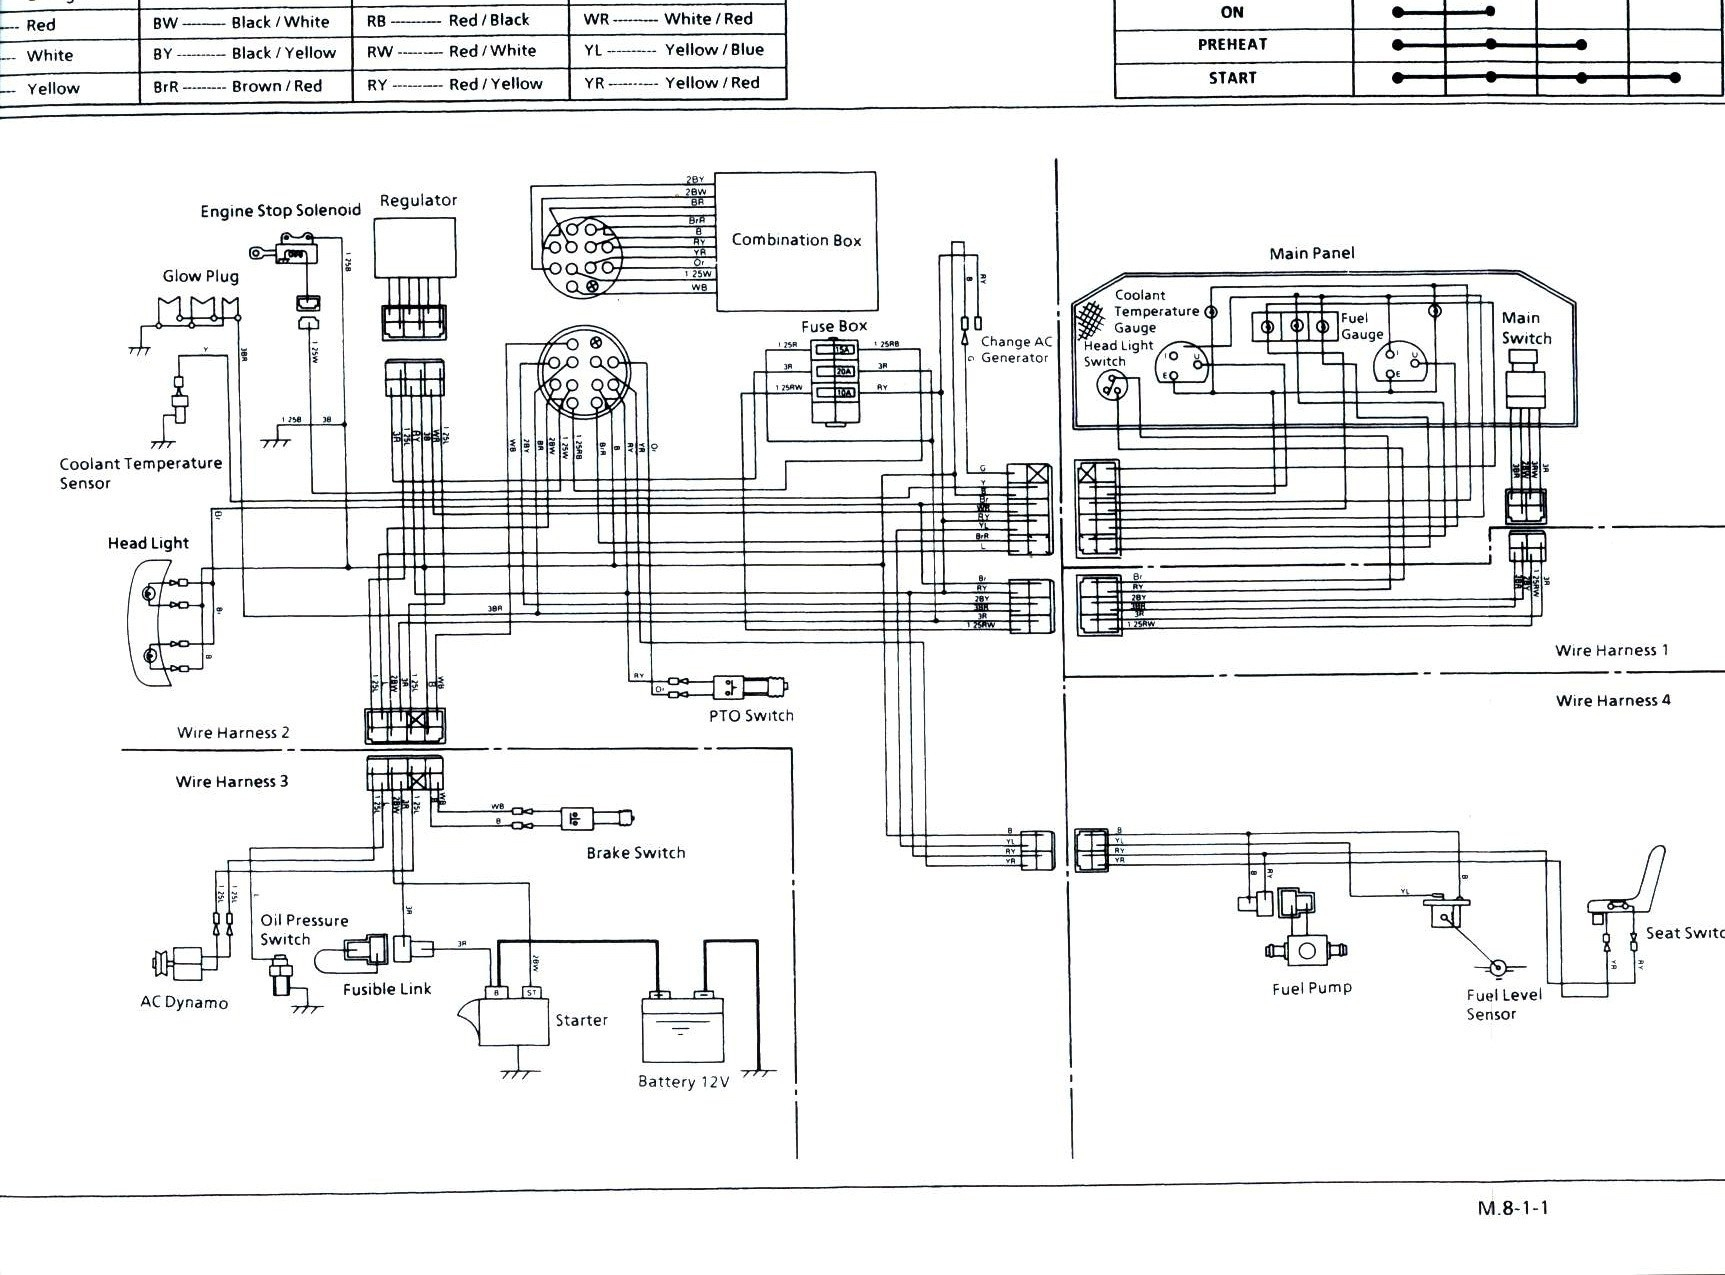 kubota l48 wiring diagram wiring diagramskubota l48 wiring diagram wiring diagram data schema kubota l48 wiring diagram kubota l48 wiring diagram